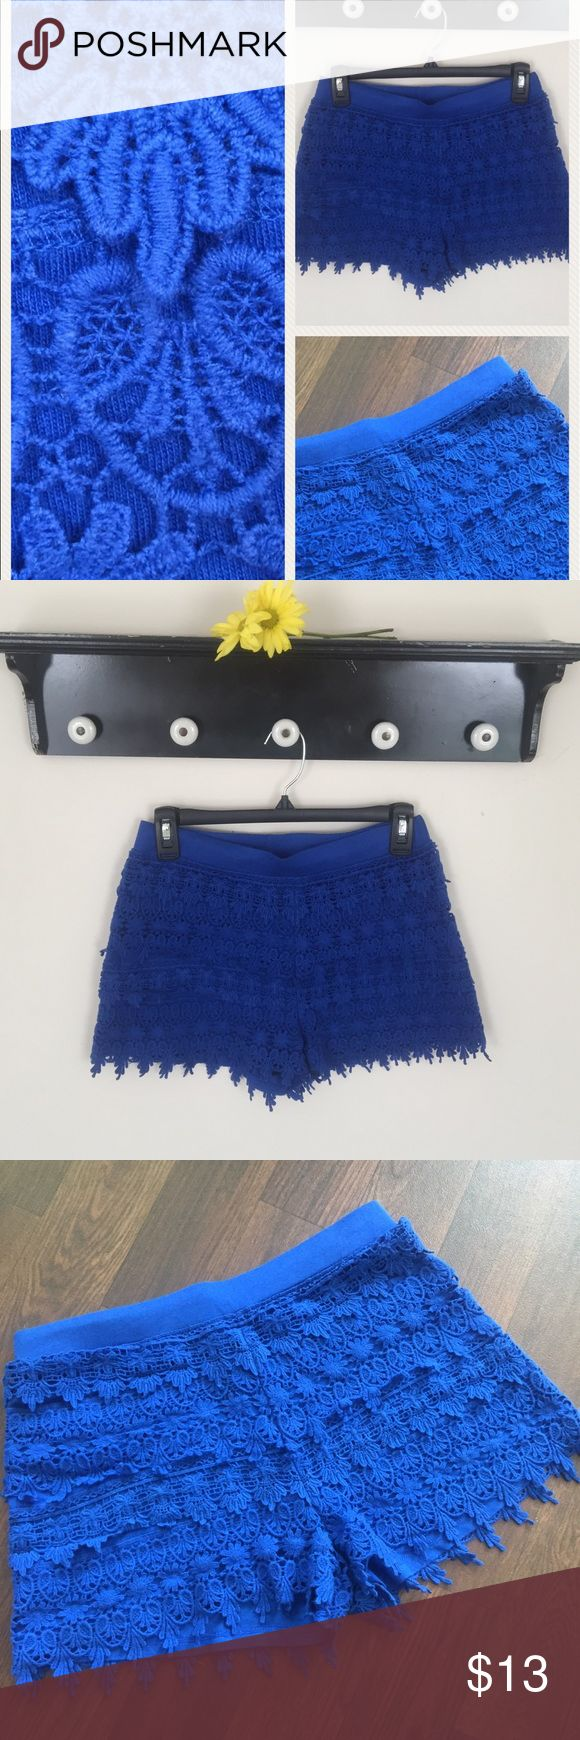 High Waist Cobalt Blue Crochet Shorts Size XS High Waist Cobalt Blue Crochet Shorts Size XS- Beautiful and vibrant blue crochet shorts from Express- Waist 13 1/2 inches but stretchy, Length 12 inches, Inseam 2 1/2 inches- 60% Cotton, 40% Modal- Thanks for looking and please check out the rest of my closet! 🐞 Express Shorts